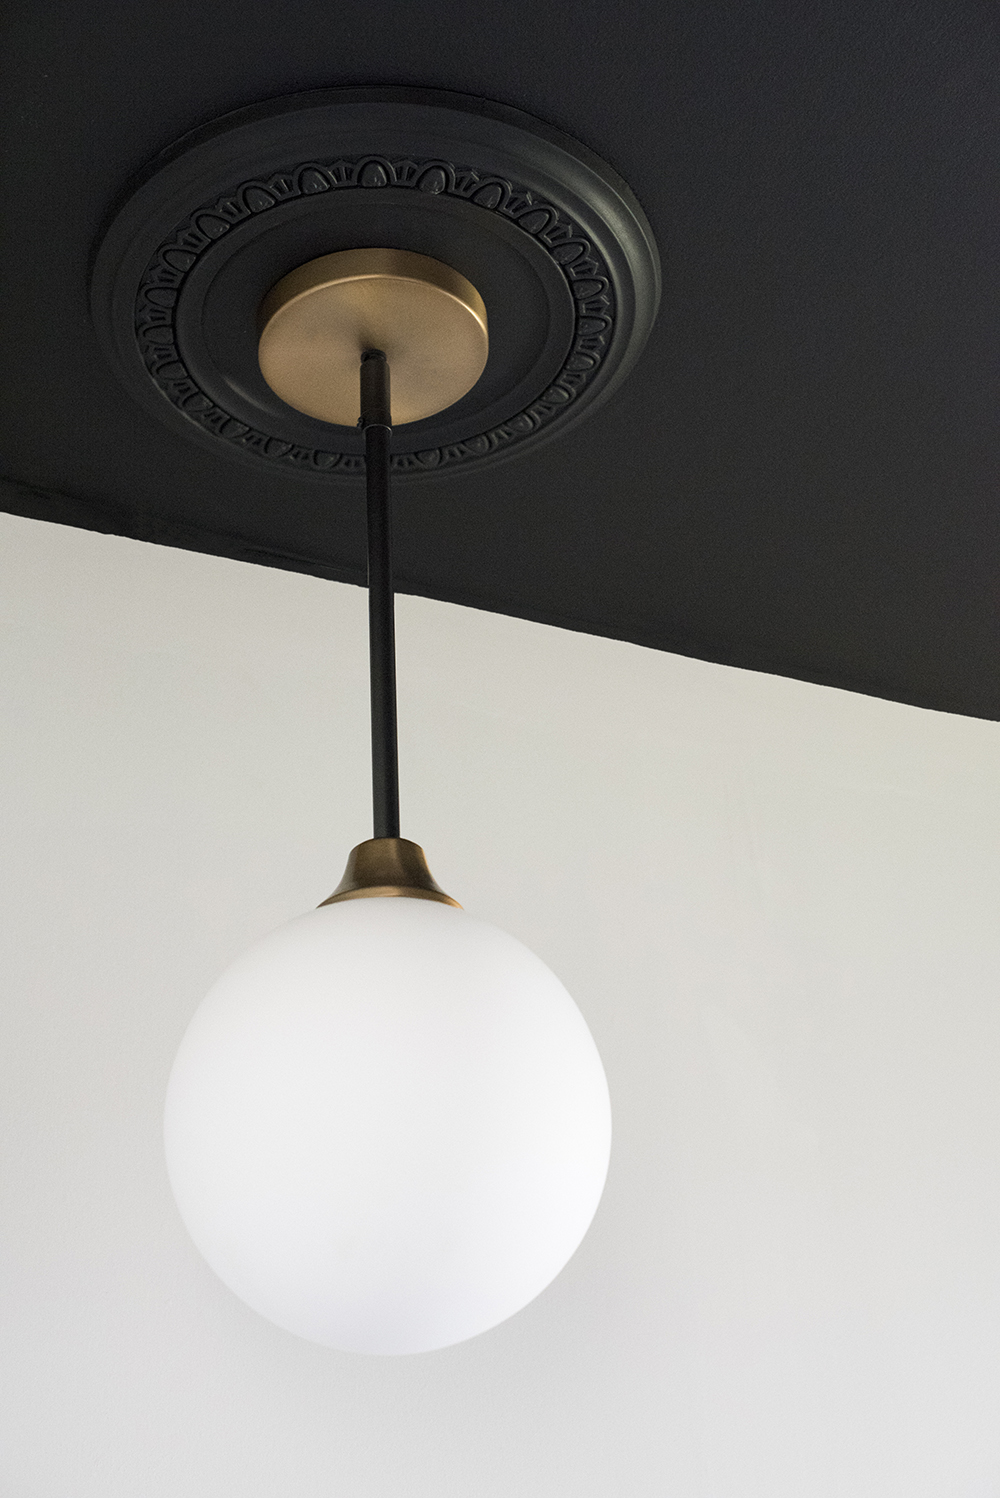 Pendant with Black Ceiling Medallion